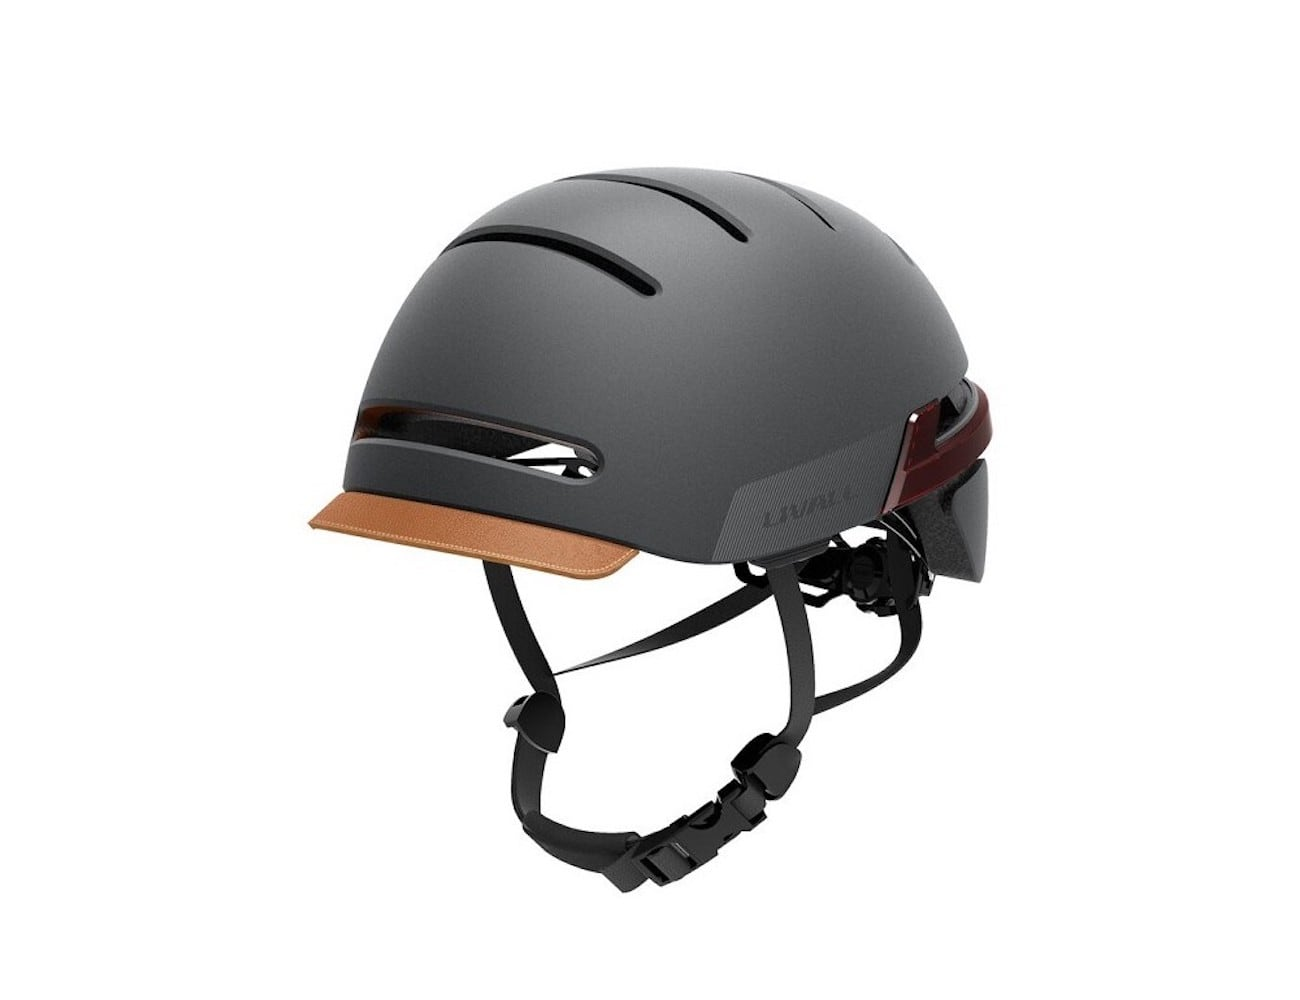 LIVALL BH51M Smart Bike Helmet